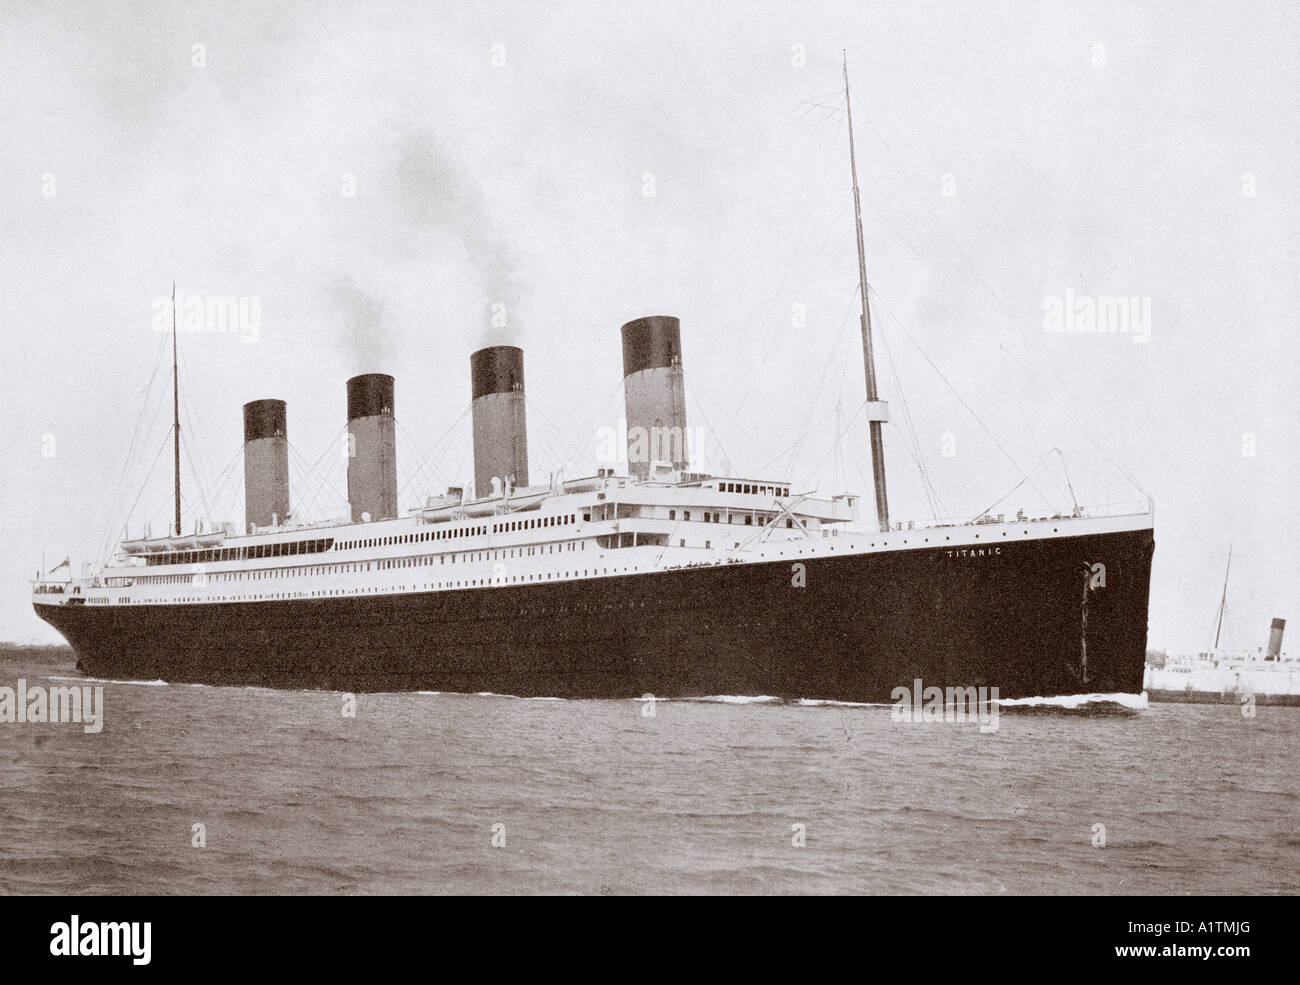 The 46,328 tons RMS Titanic of the White Star Line - Stock Image